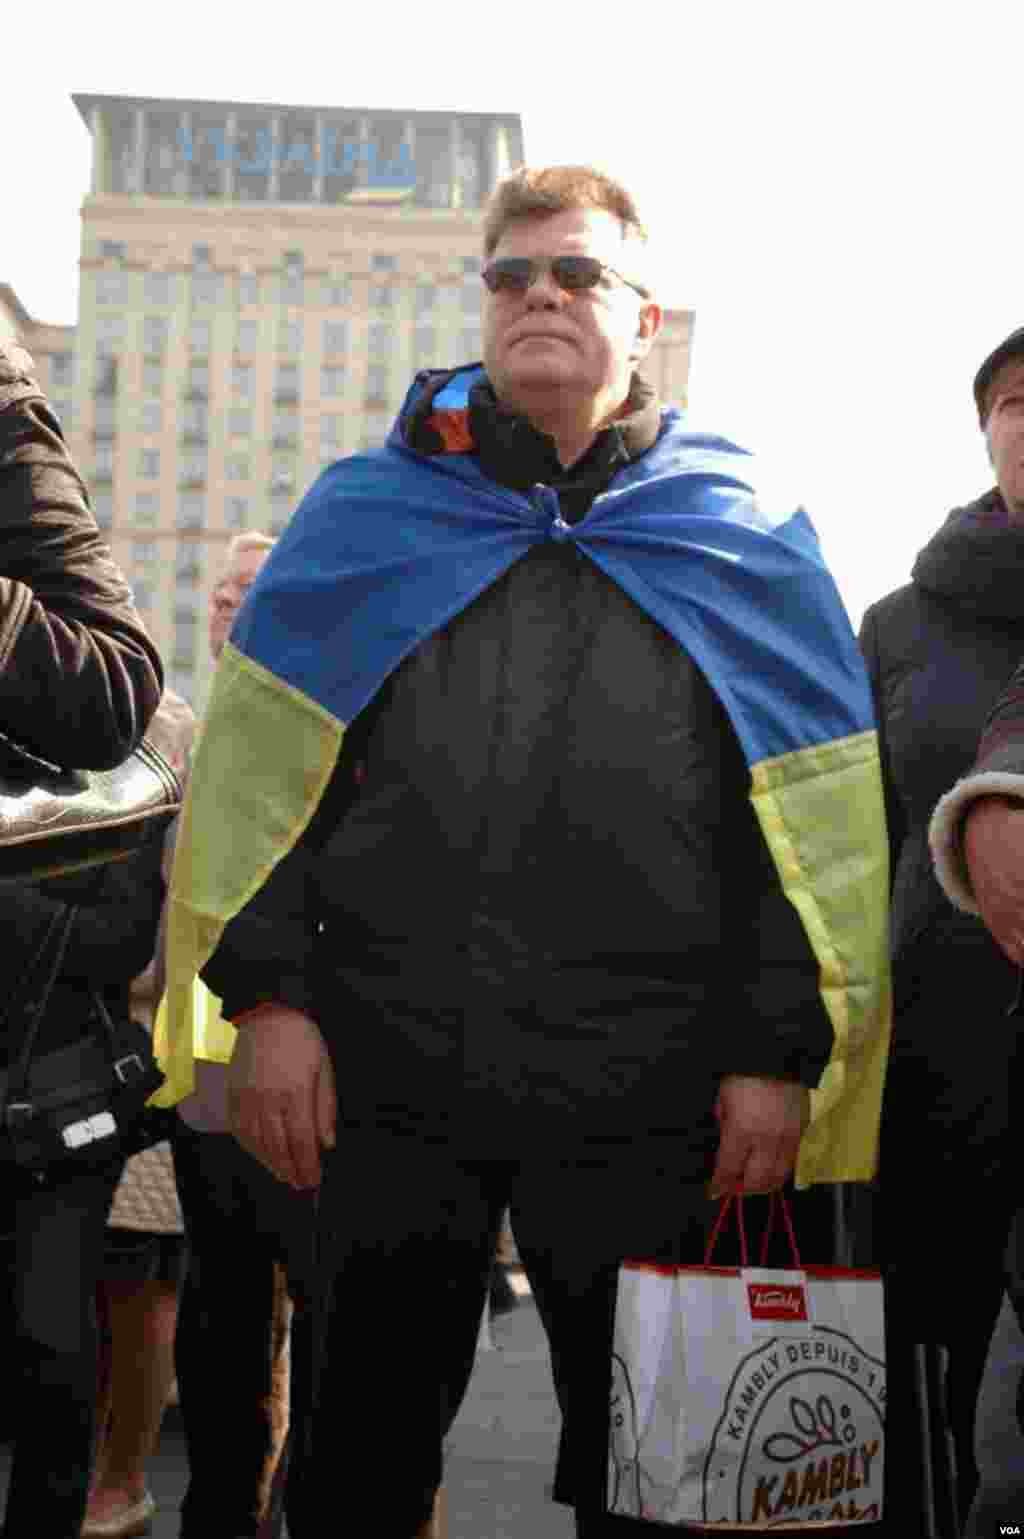 A man wearing a Ukranian flag listens to speakers at a unity rally in Maidan, central Kyiv. (Steve Herman/VOA)